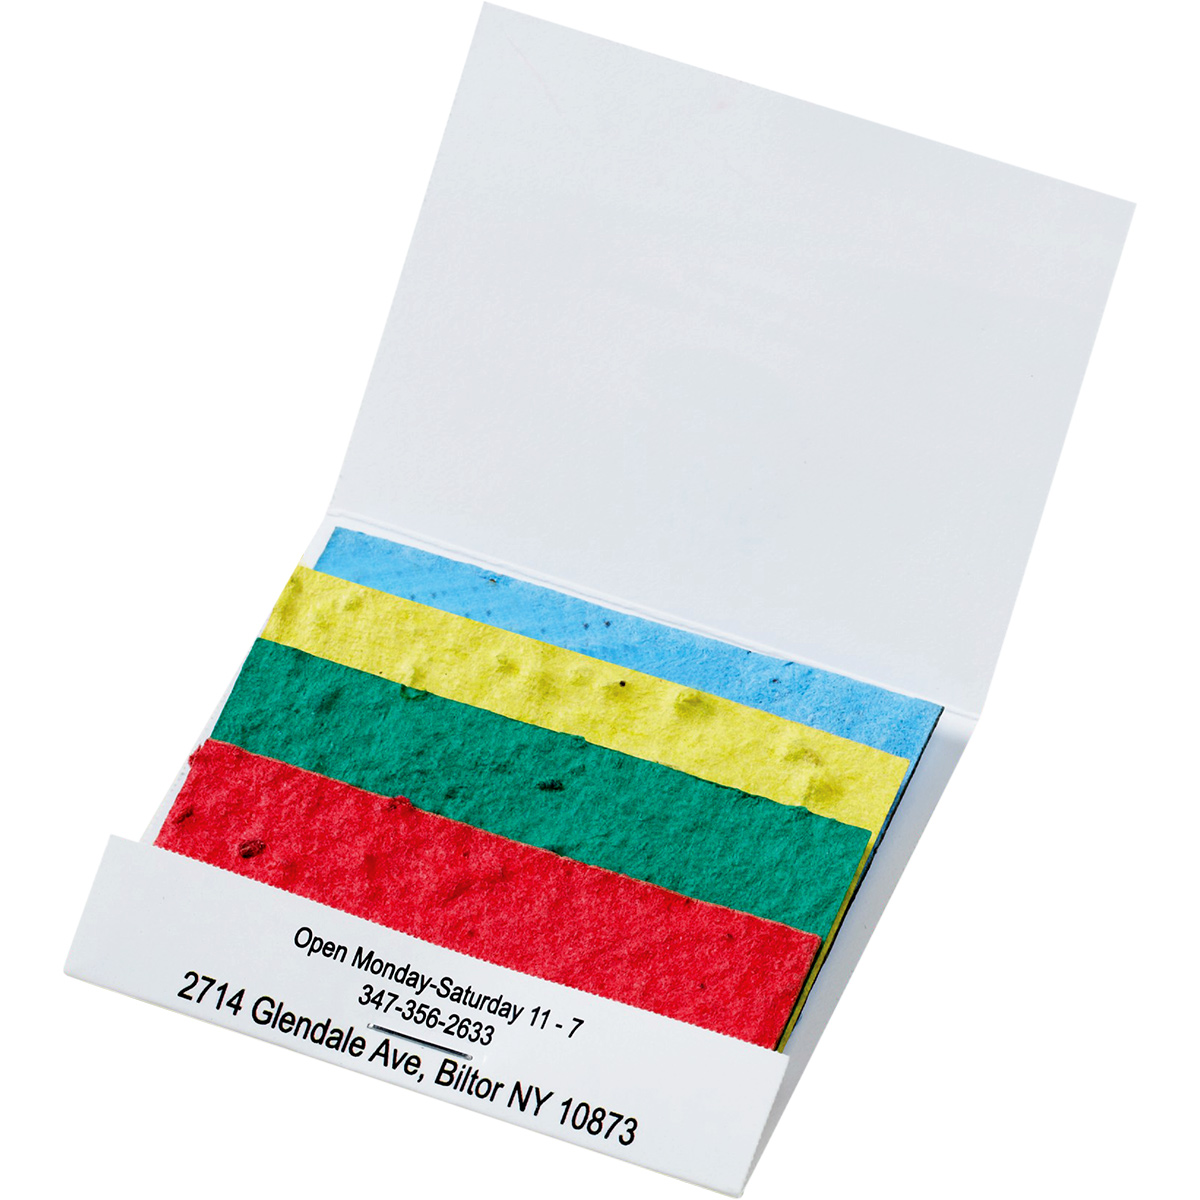 Seed Paper Matchbook: Color Stack with Wildflower Seeds